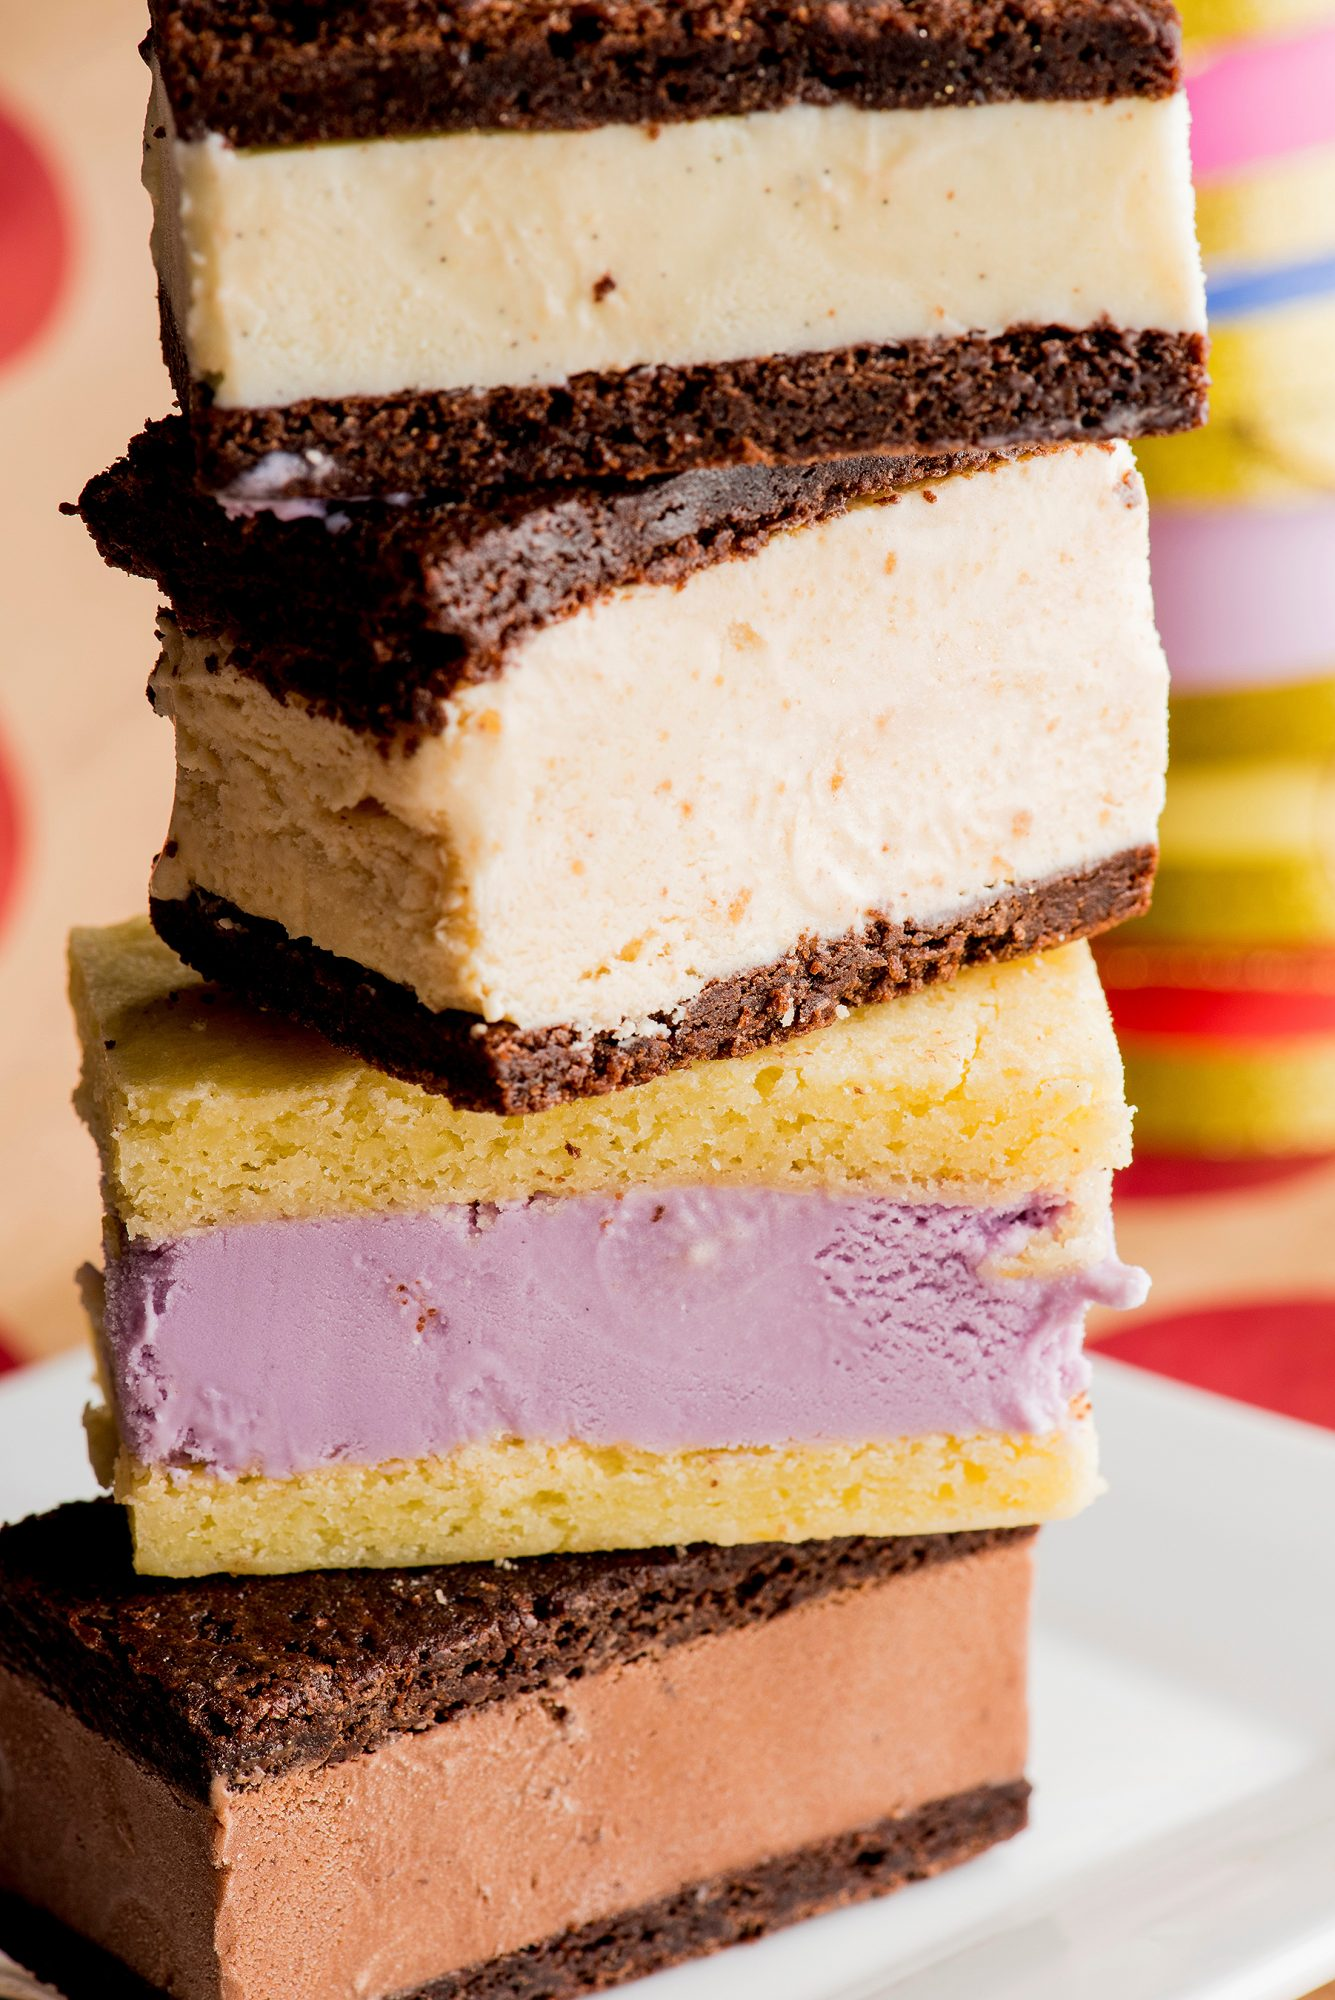 Ice cream sandwiches editor picksCredit: Too Cool Chix